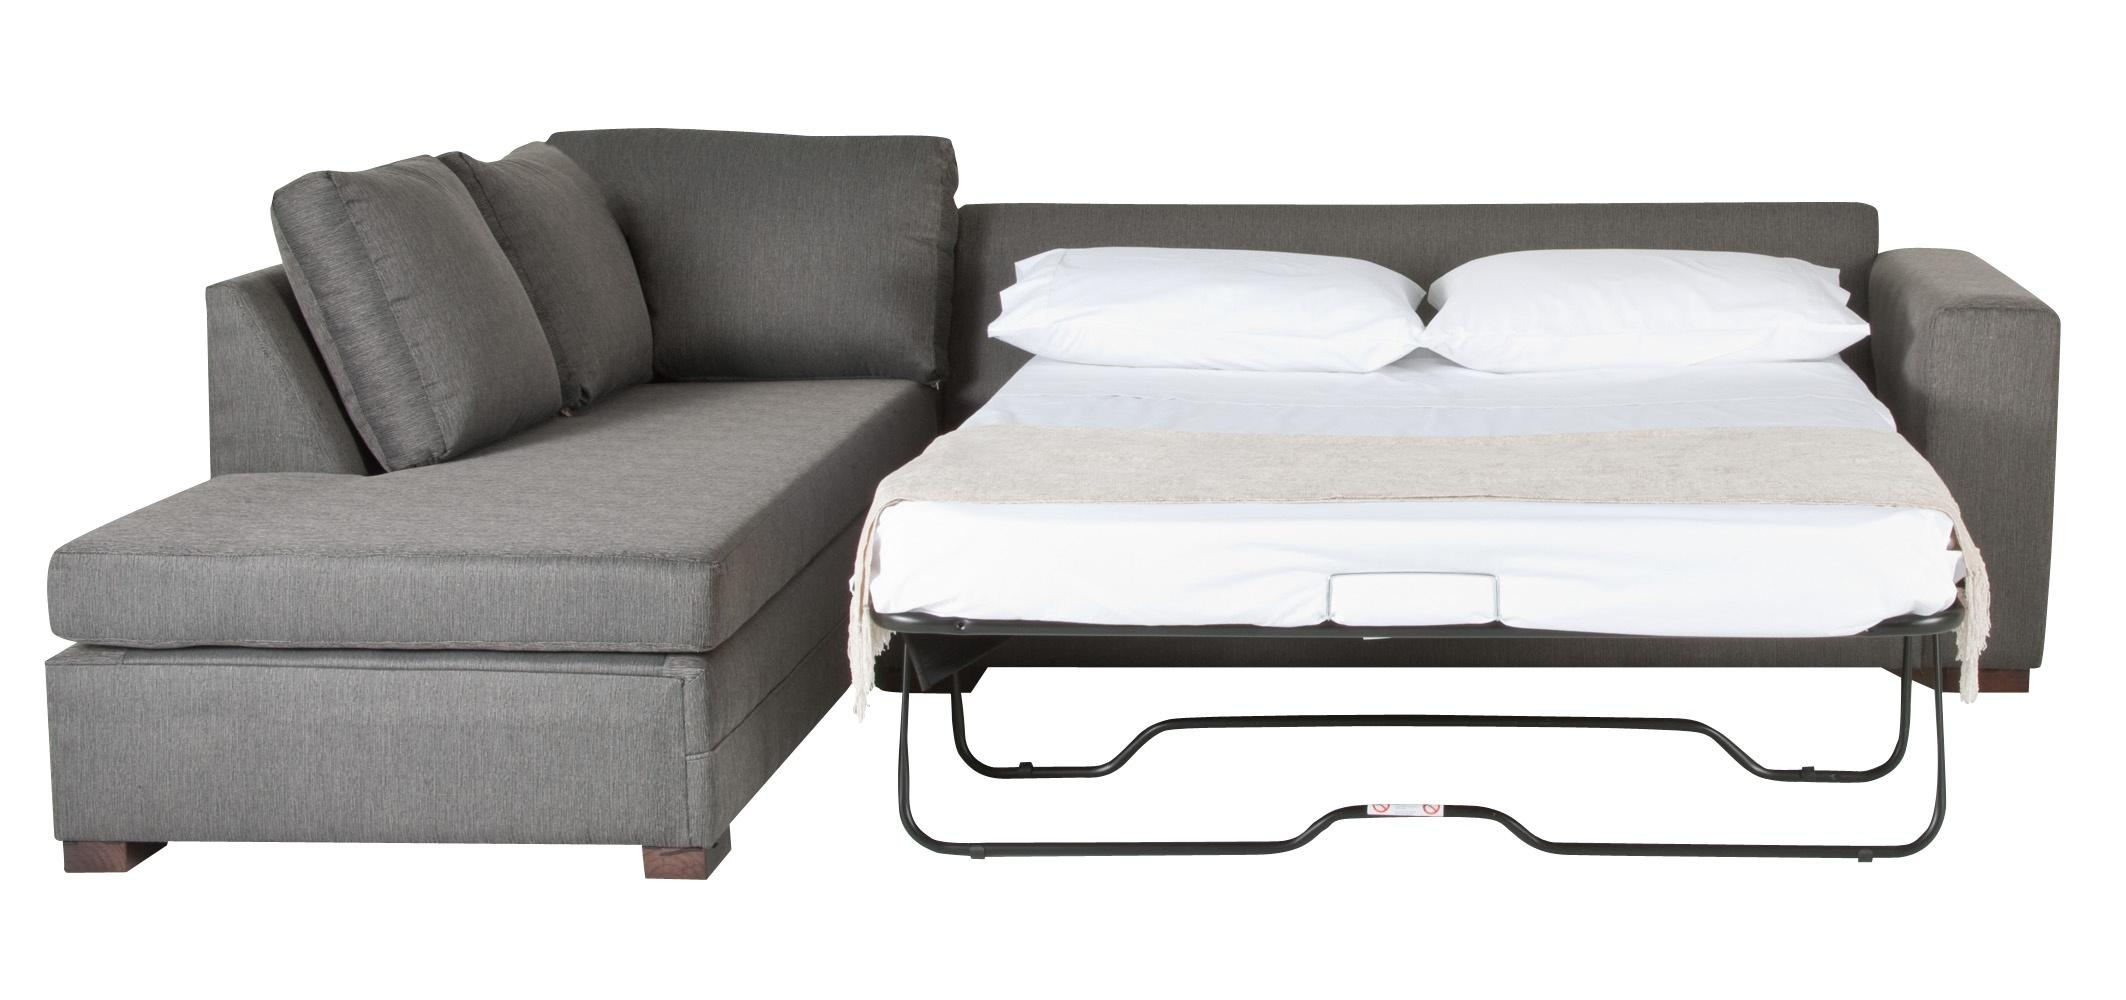 Perfect Corner Sleeper Sofa Bed 60 With Additional High Sleeper With High Sleeper With Desk And Sofa (View 18 of 20)